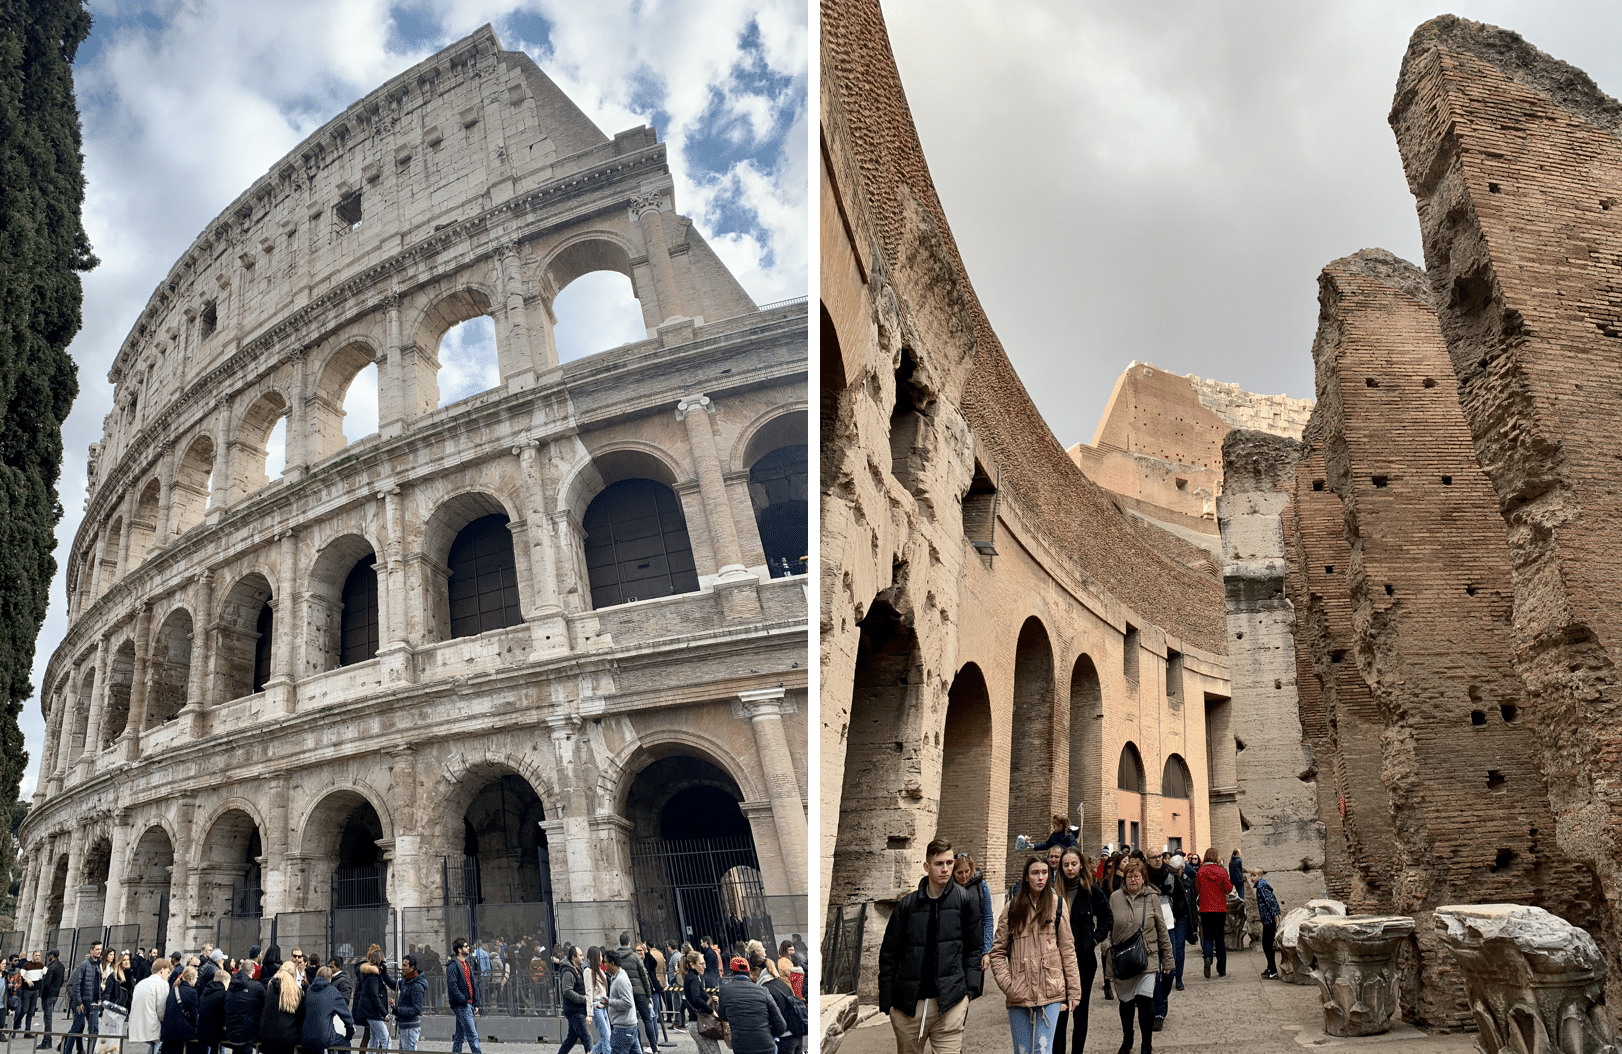 visiter rome : le colisee